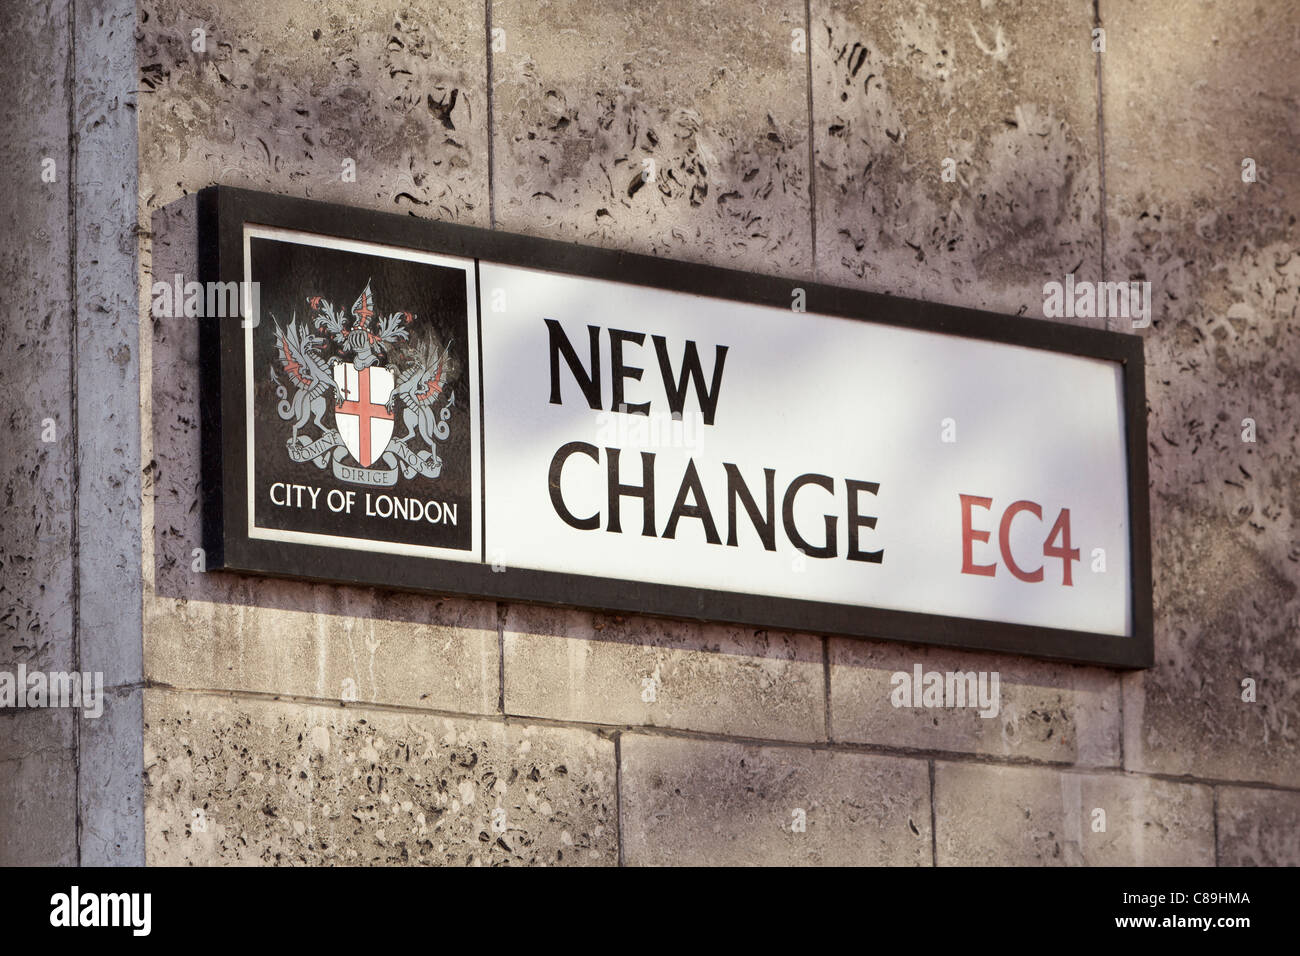 New change street sign, London, England - Stock Image